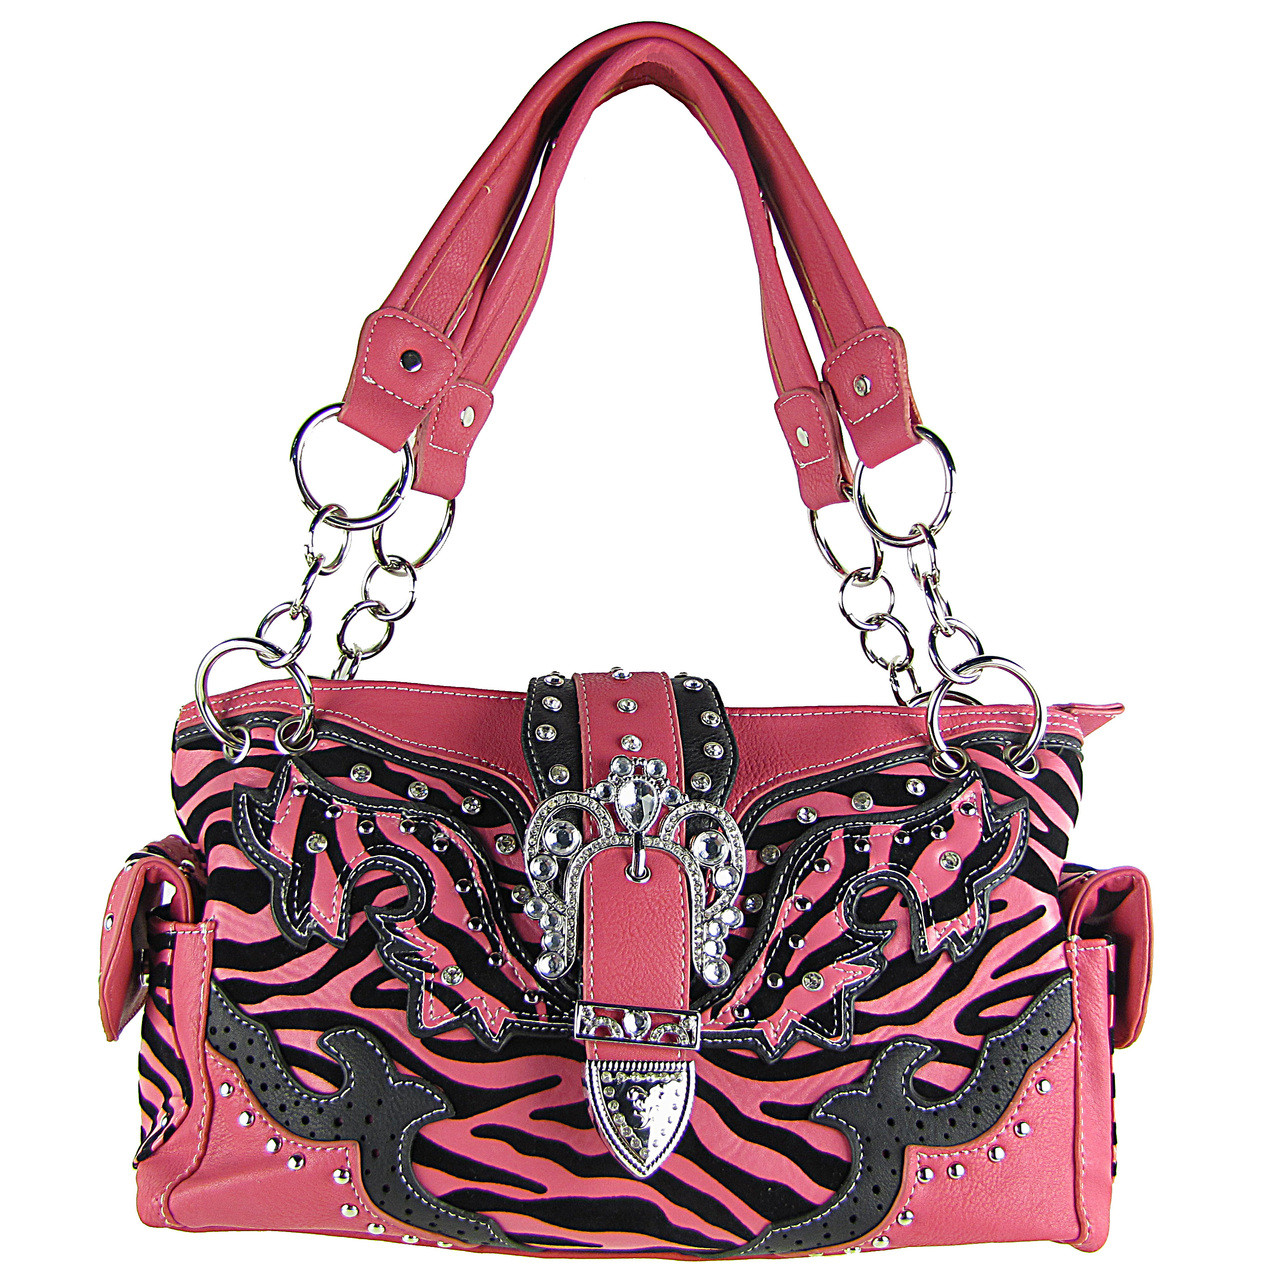 HOT PINK ZEBRA STUDDED RHINESTONE BUCKLE LOOK SHOULDER HANDBAG HB1-W37FZ-1HPK